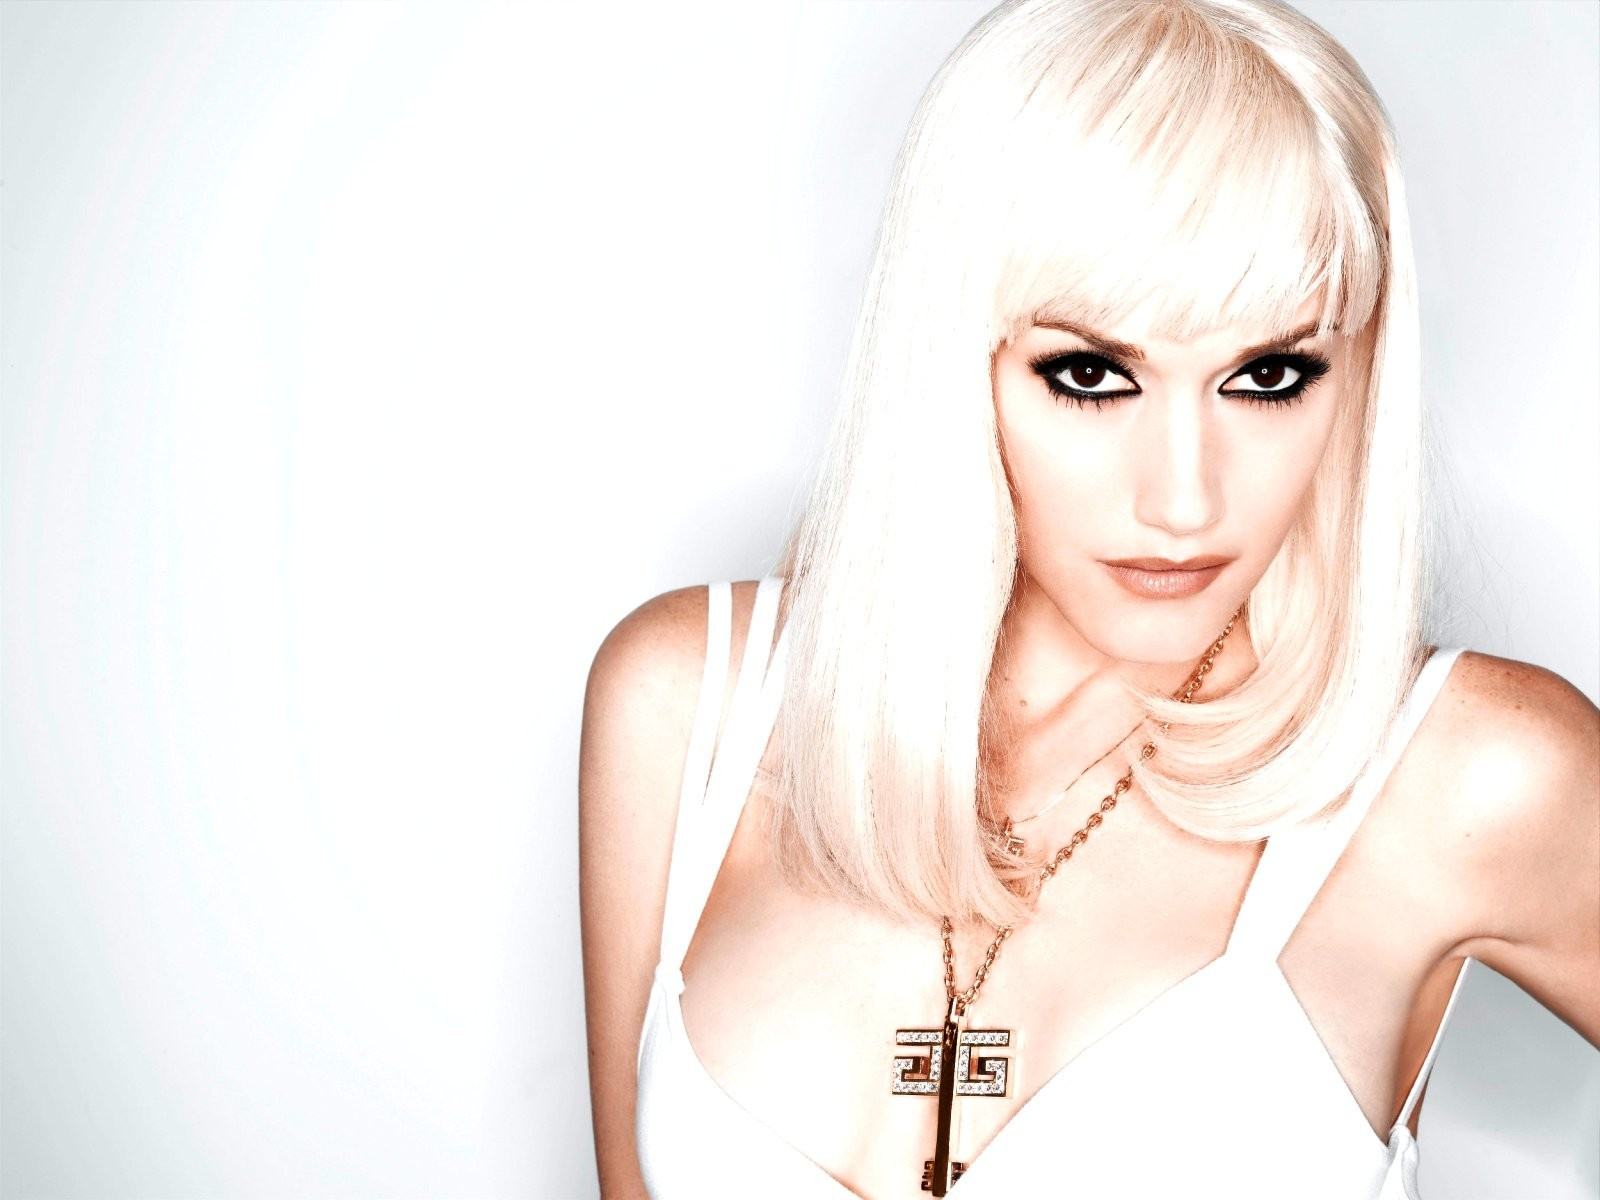 blondes gwen stefani singers HD Wallpaper